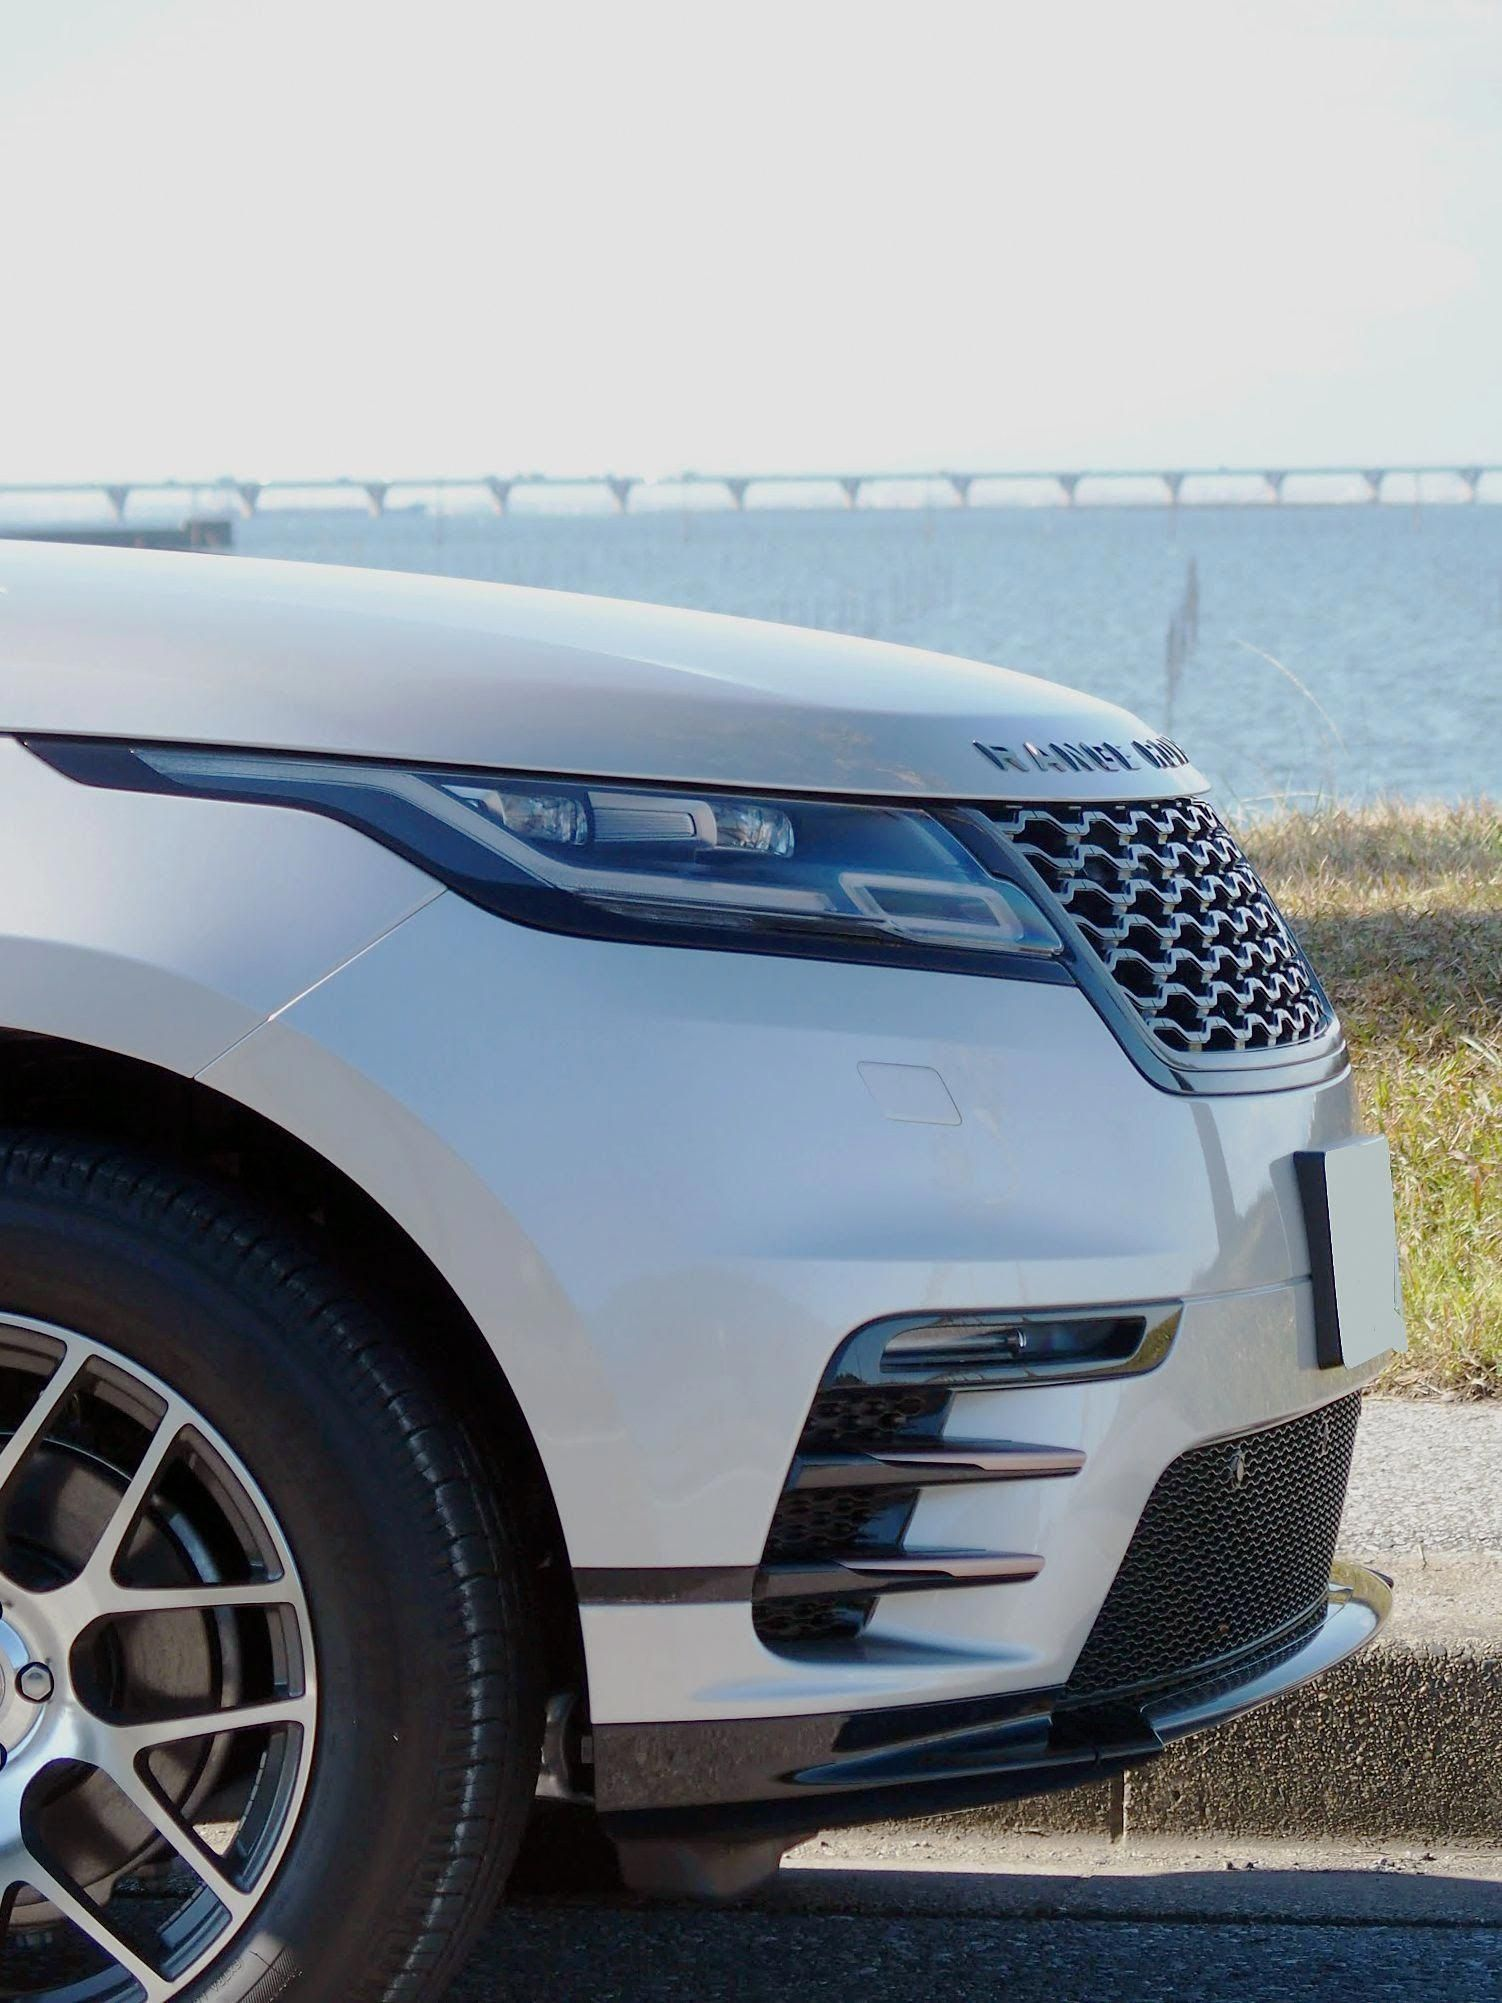 Best Cars In The World This Year Should Certainly Be A Whole Lot A Lot More Interesting Since Some Deluxe Trademar Range Rover Classic Cars Car In The World